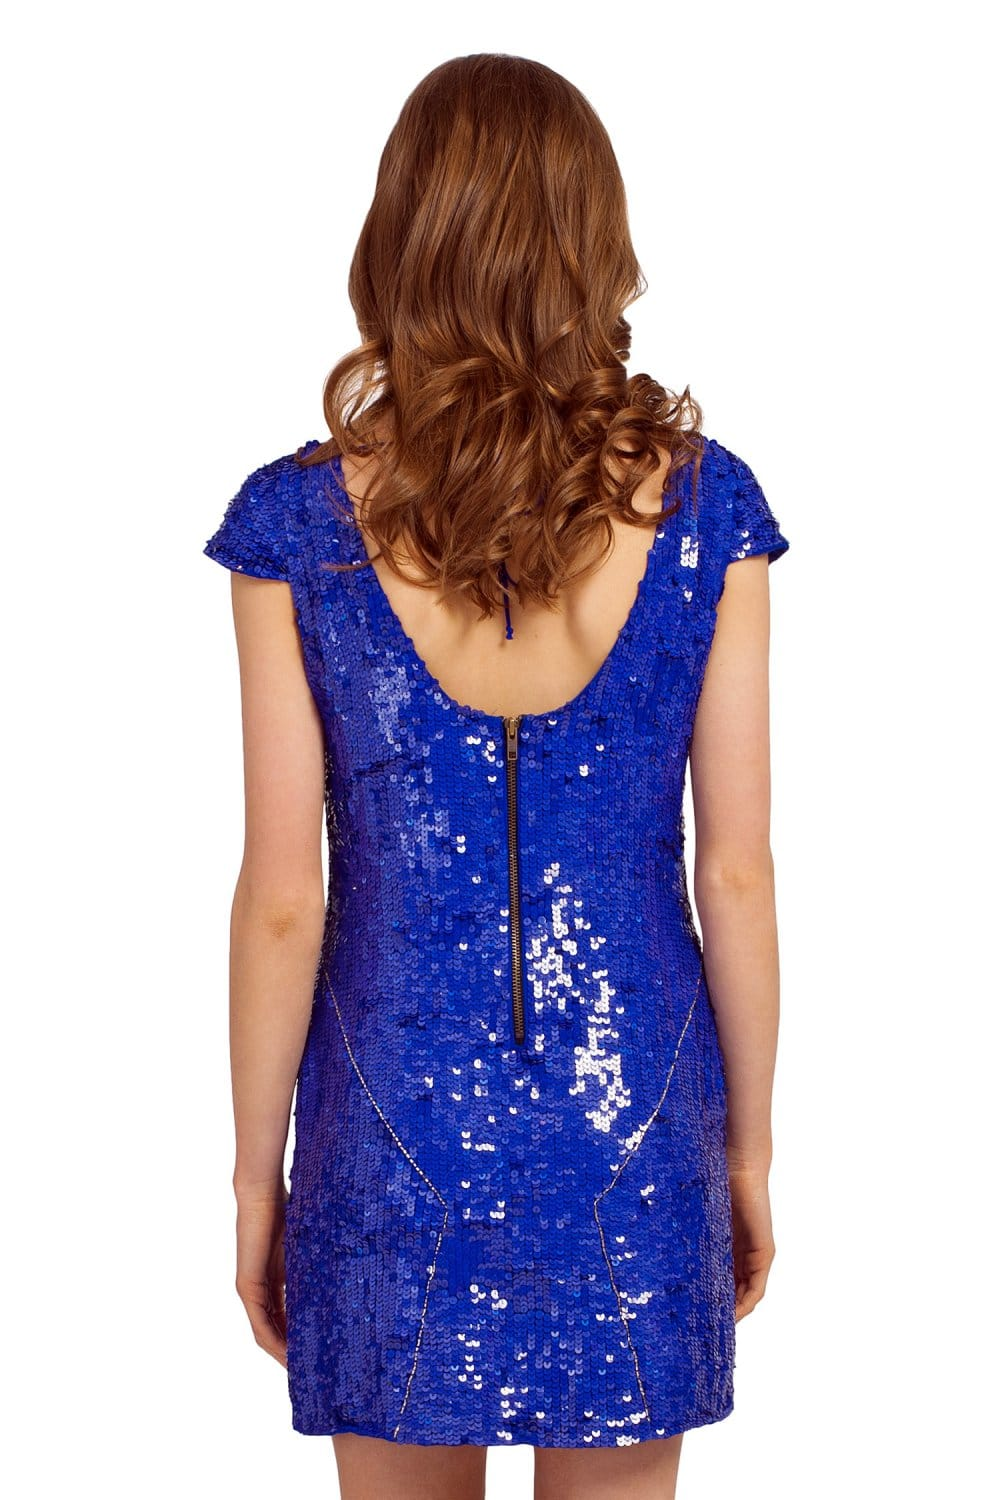 Embrace dazzling style with embellished dresses in beaded and sequin. Shop the latest collection. Next day delivery and free returns available.